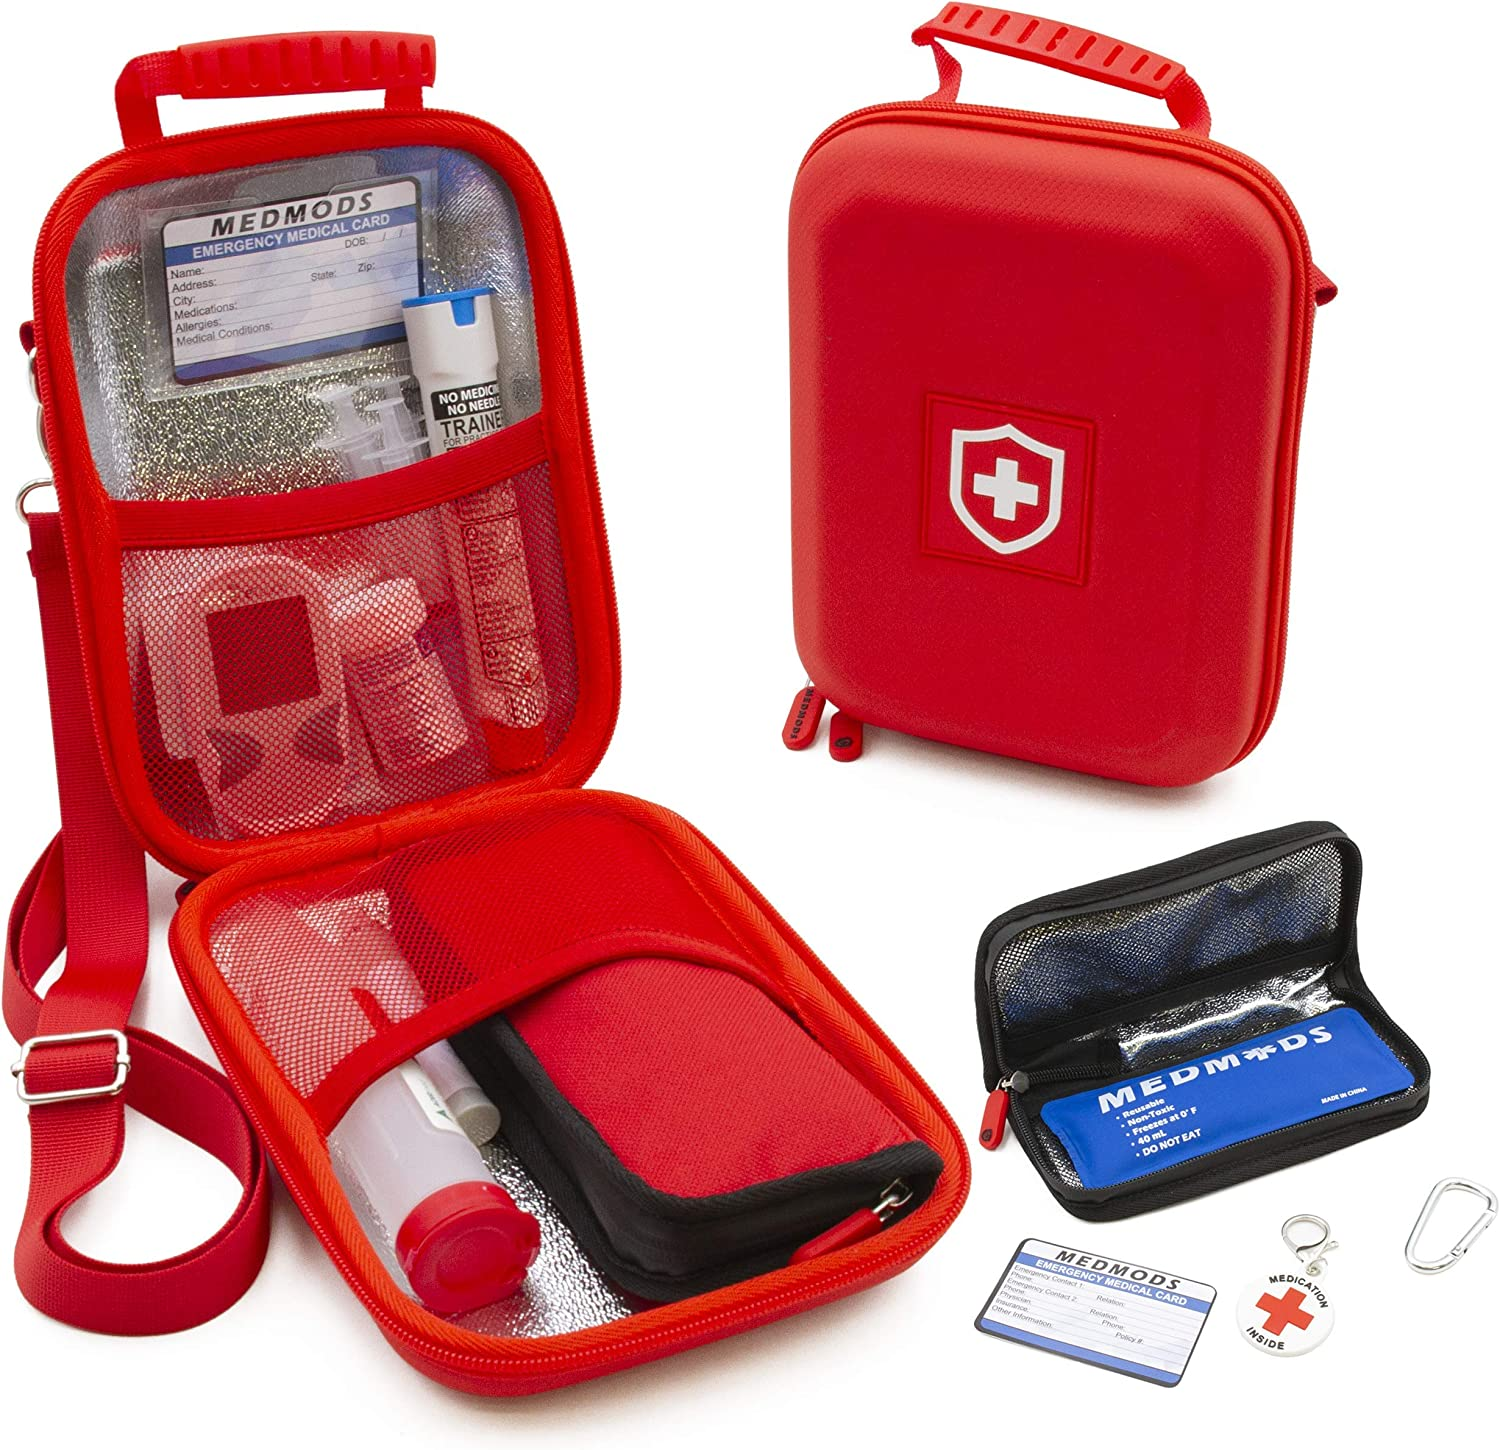 MEDMODS Insulin Cooler Travel Case and Insulated Diabetes Bag with Ice Pack, ID Card, Medical Alert Tag & Shoulder Strap - Protective Insulin Pen Case for Diabetic Medication & Essentials, Case Only